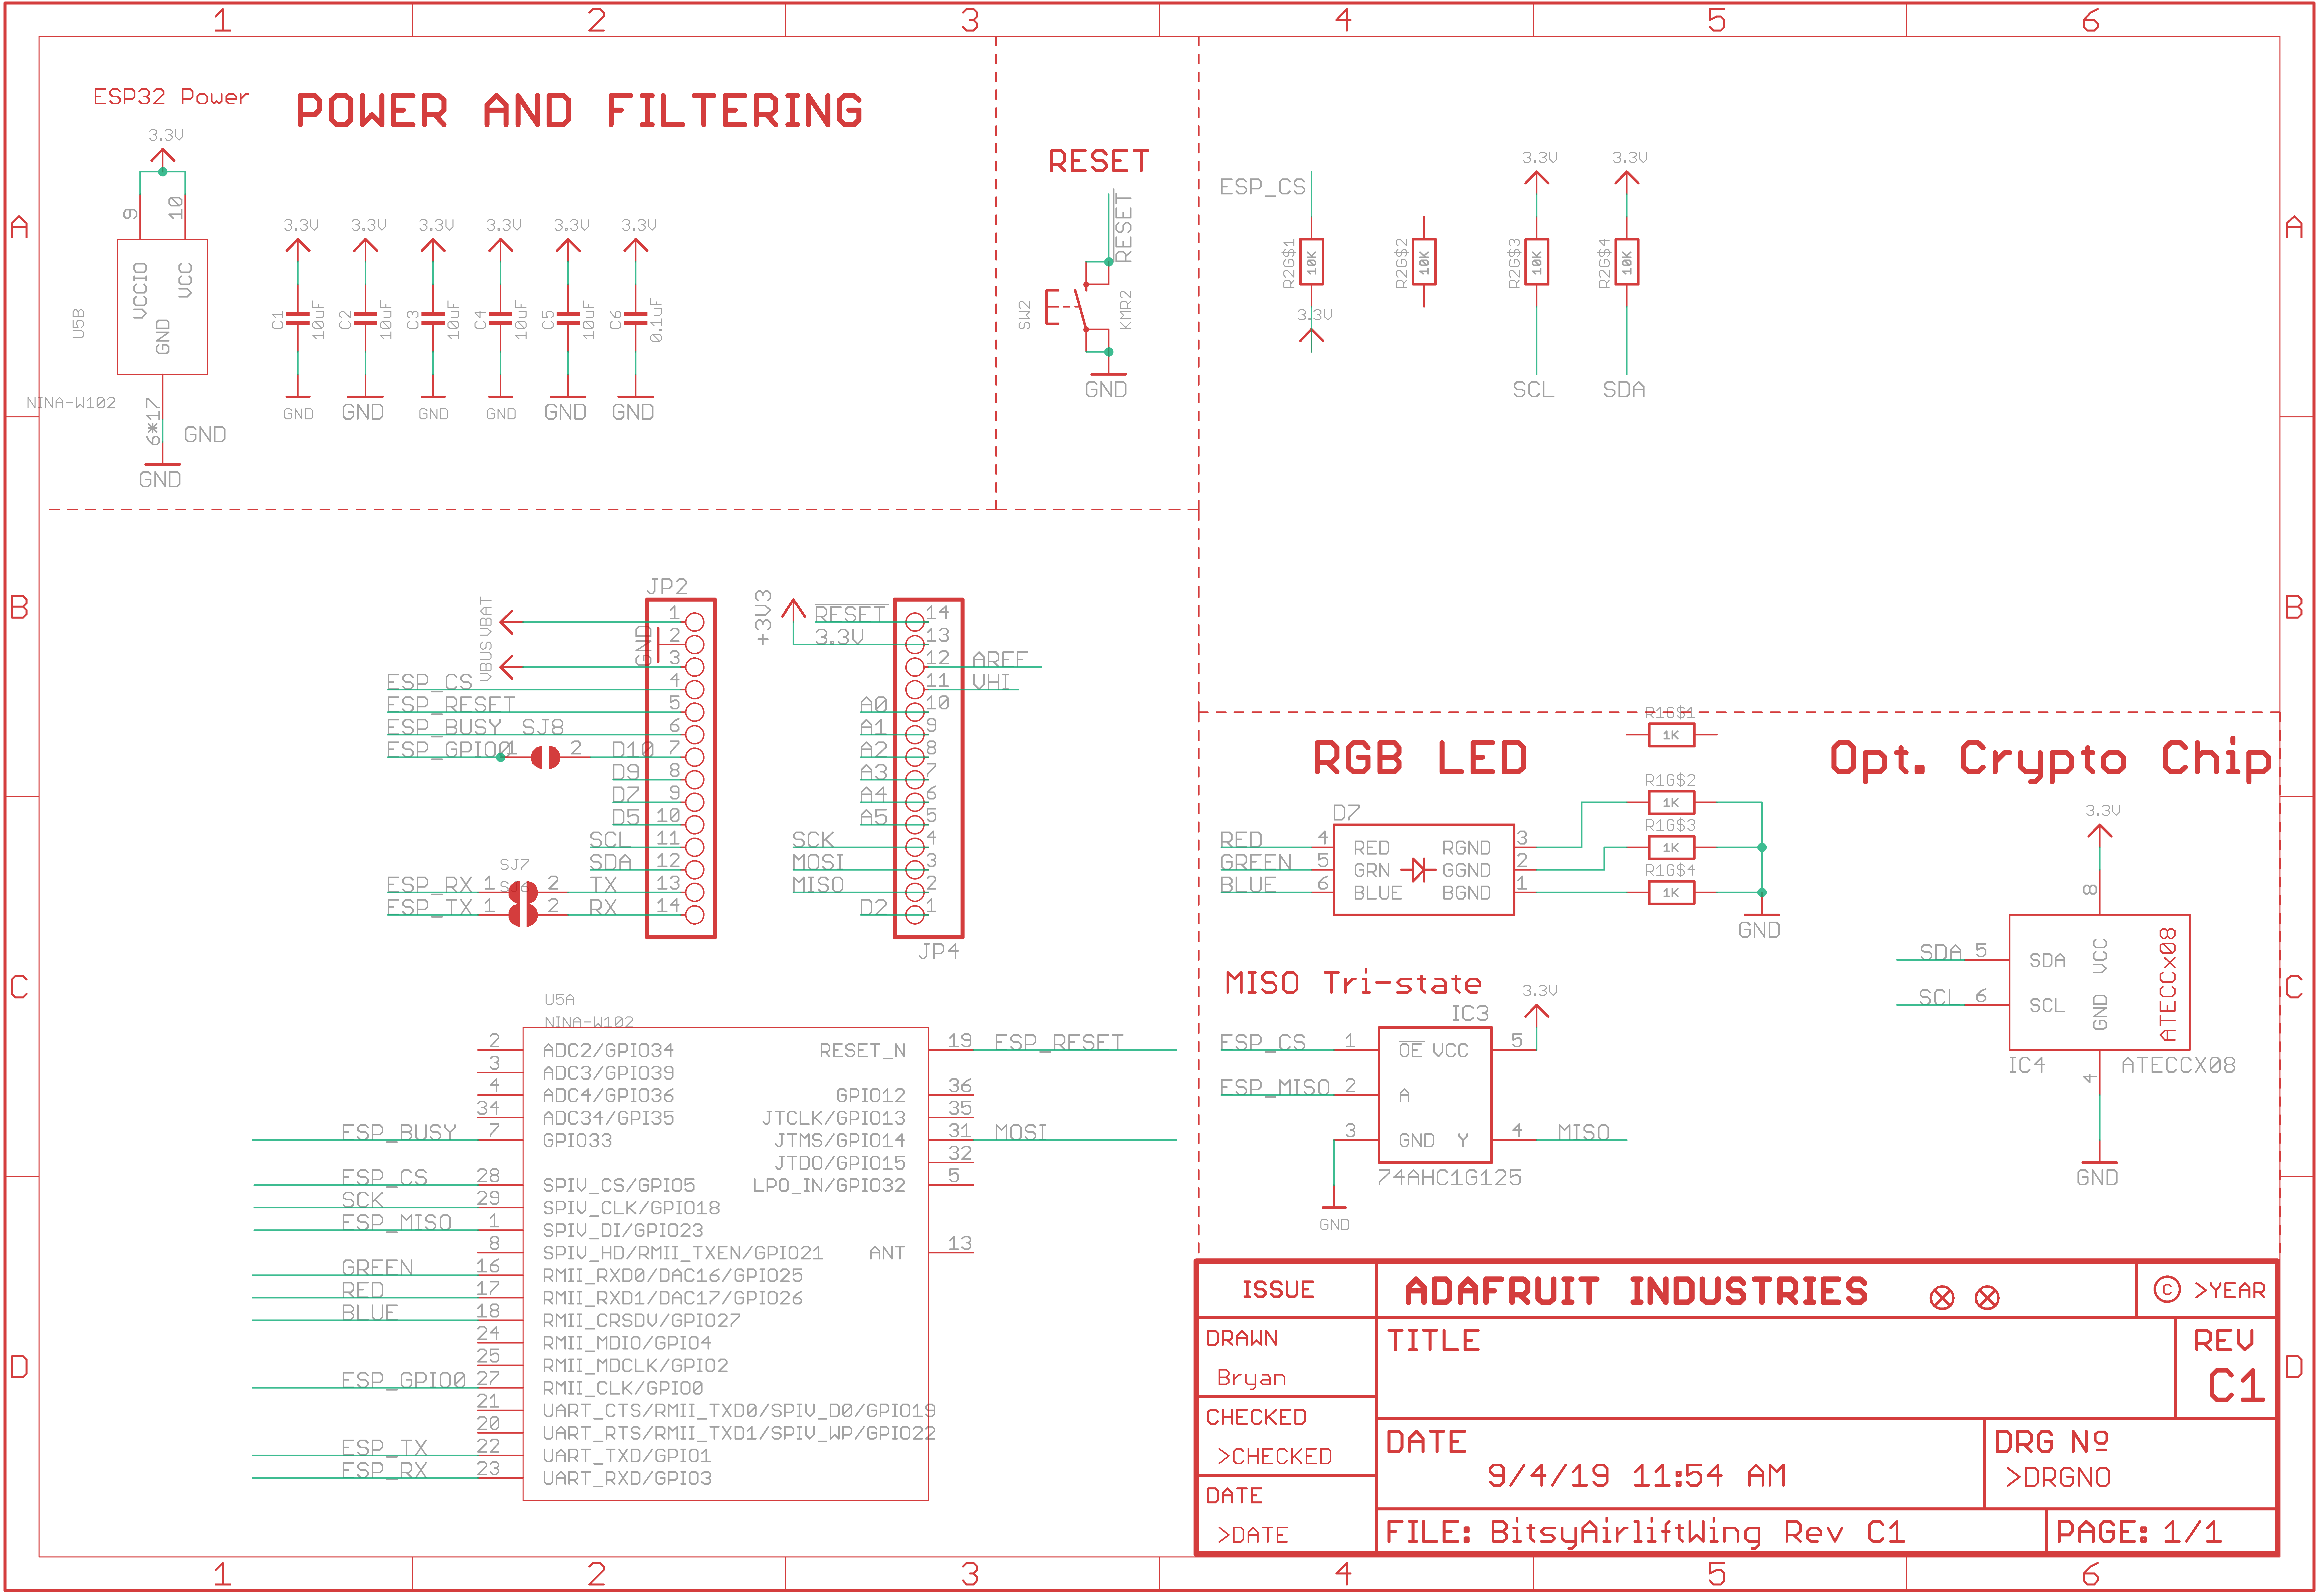 adafruit_products_schematic.png